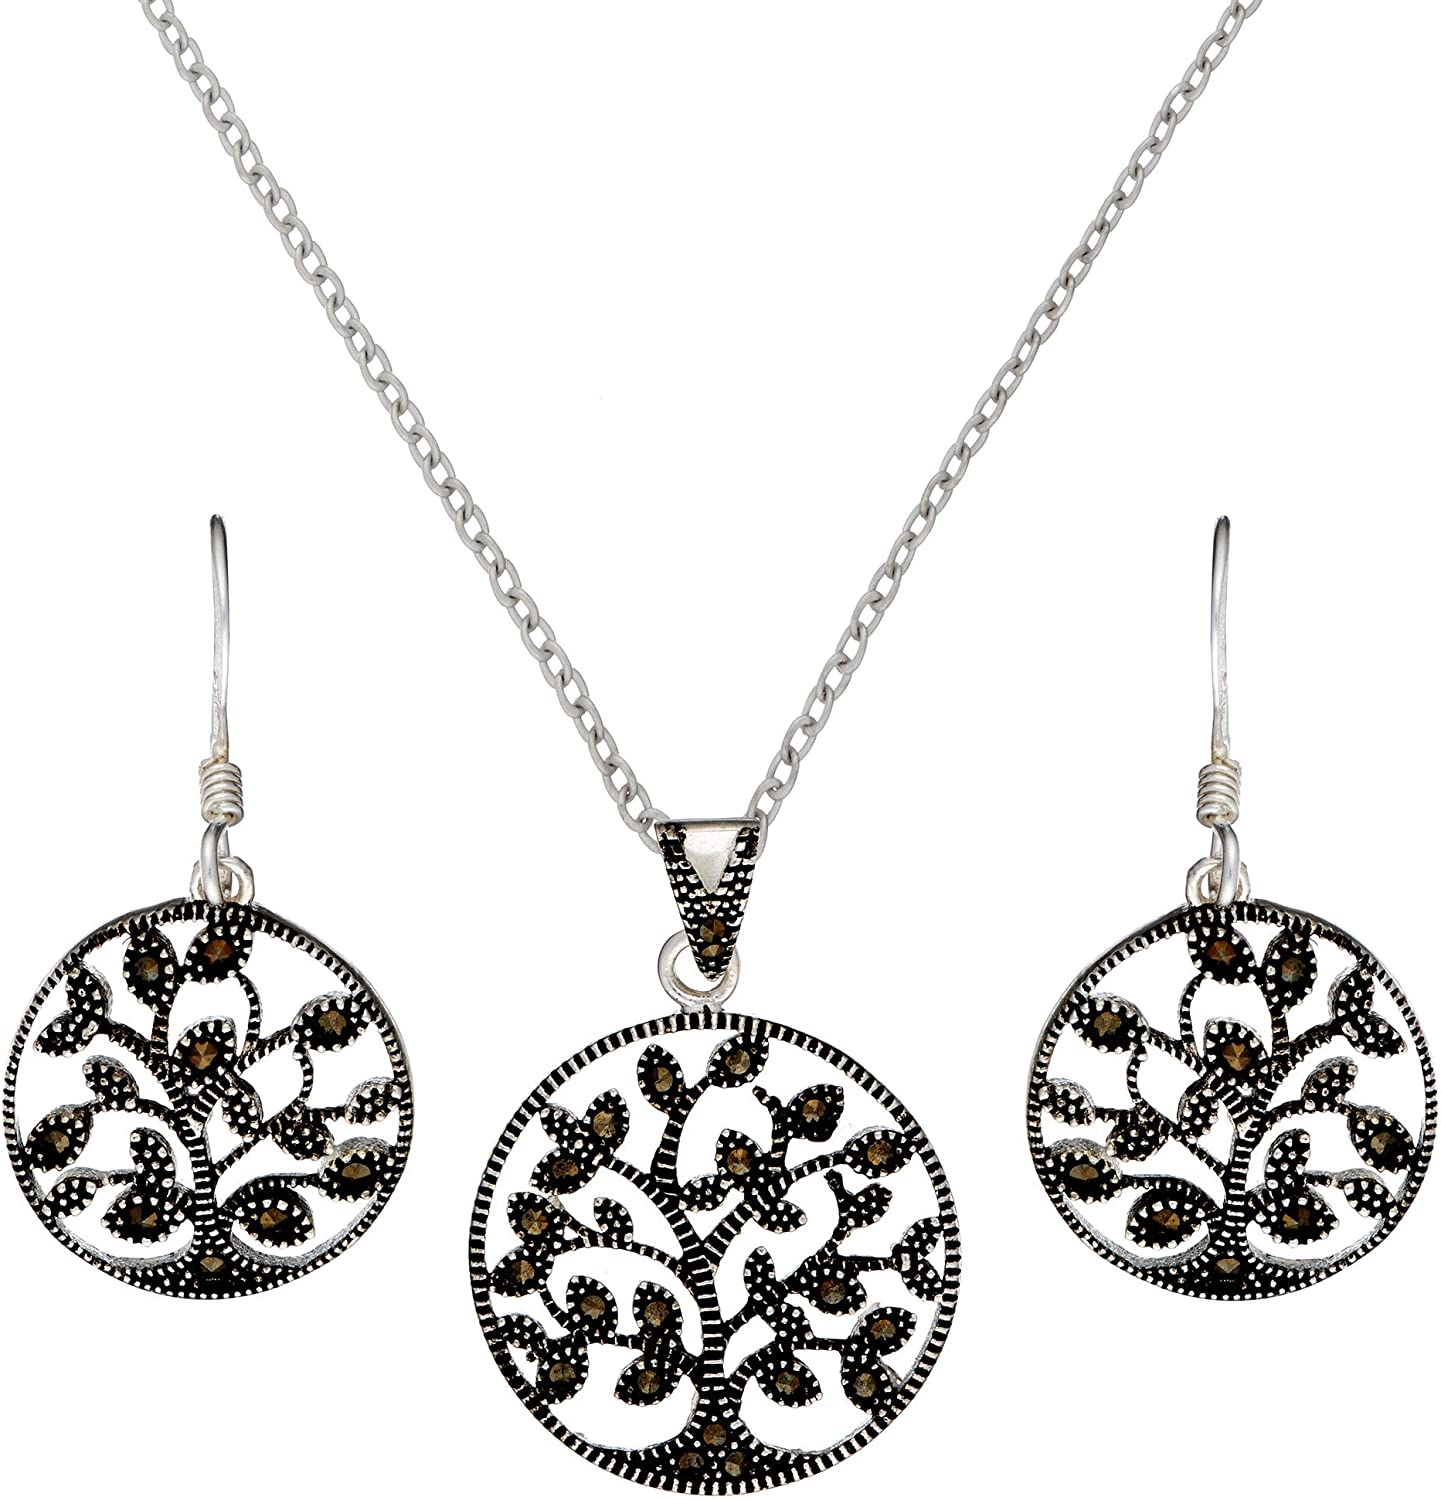 Online limited product Silverly Women's .925 Sterling Silver o Max 59% OFF Tree Marcasite Simulated